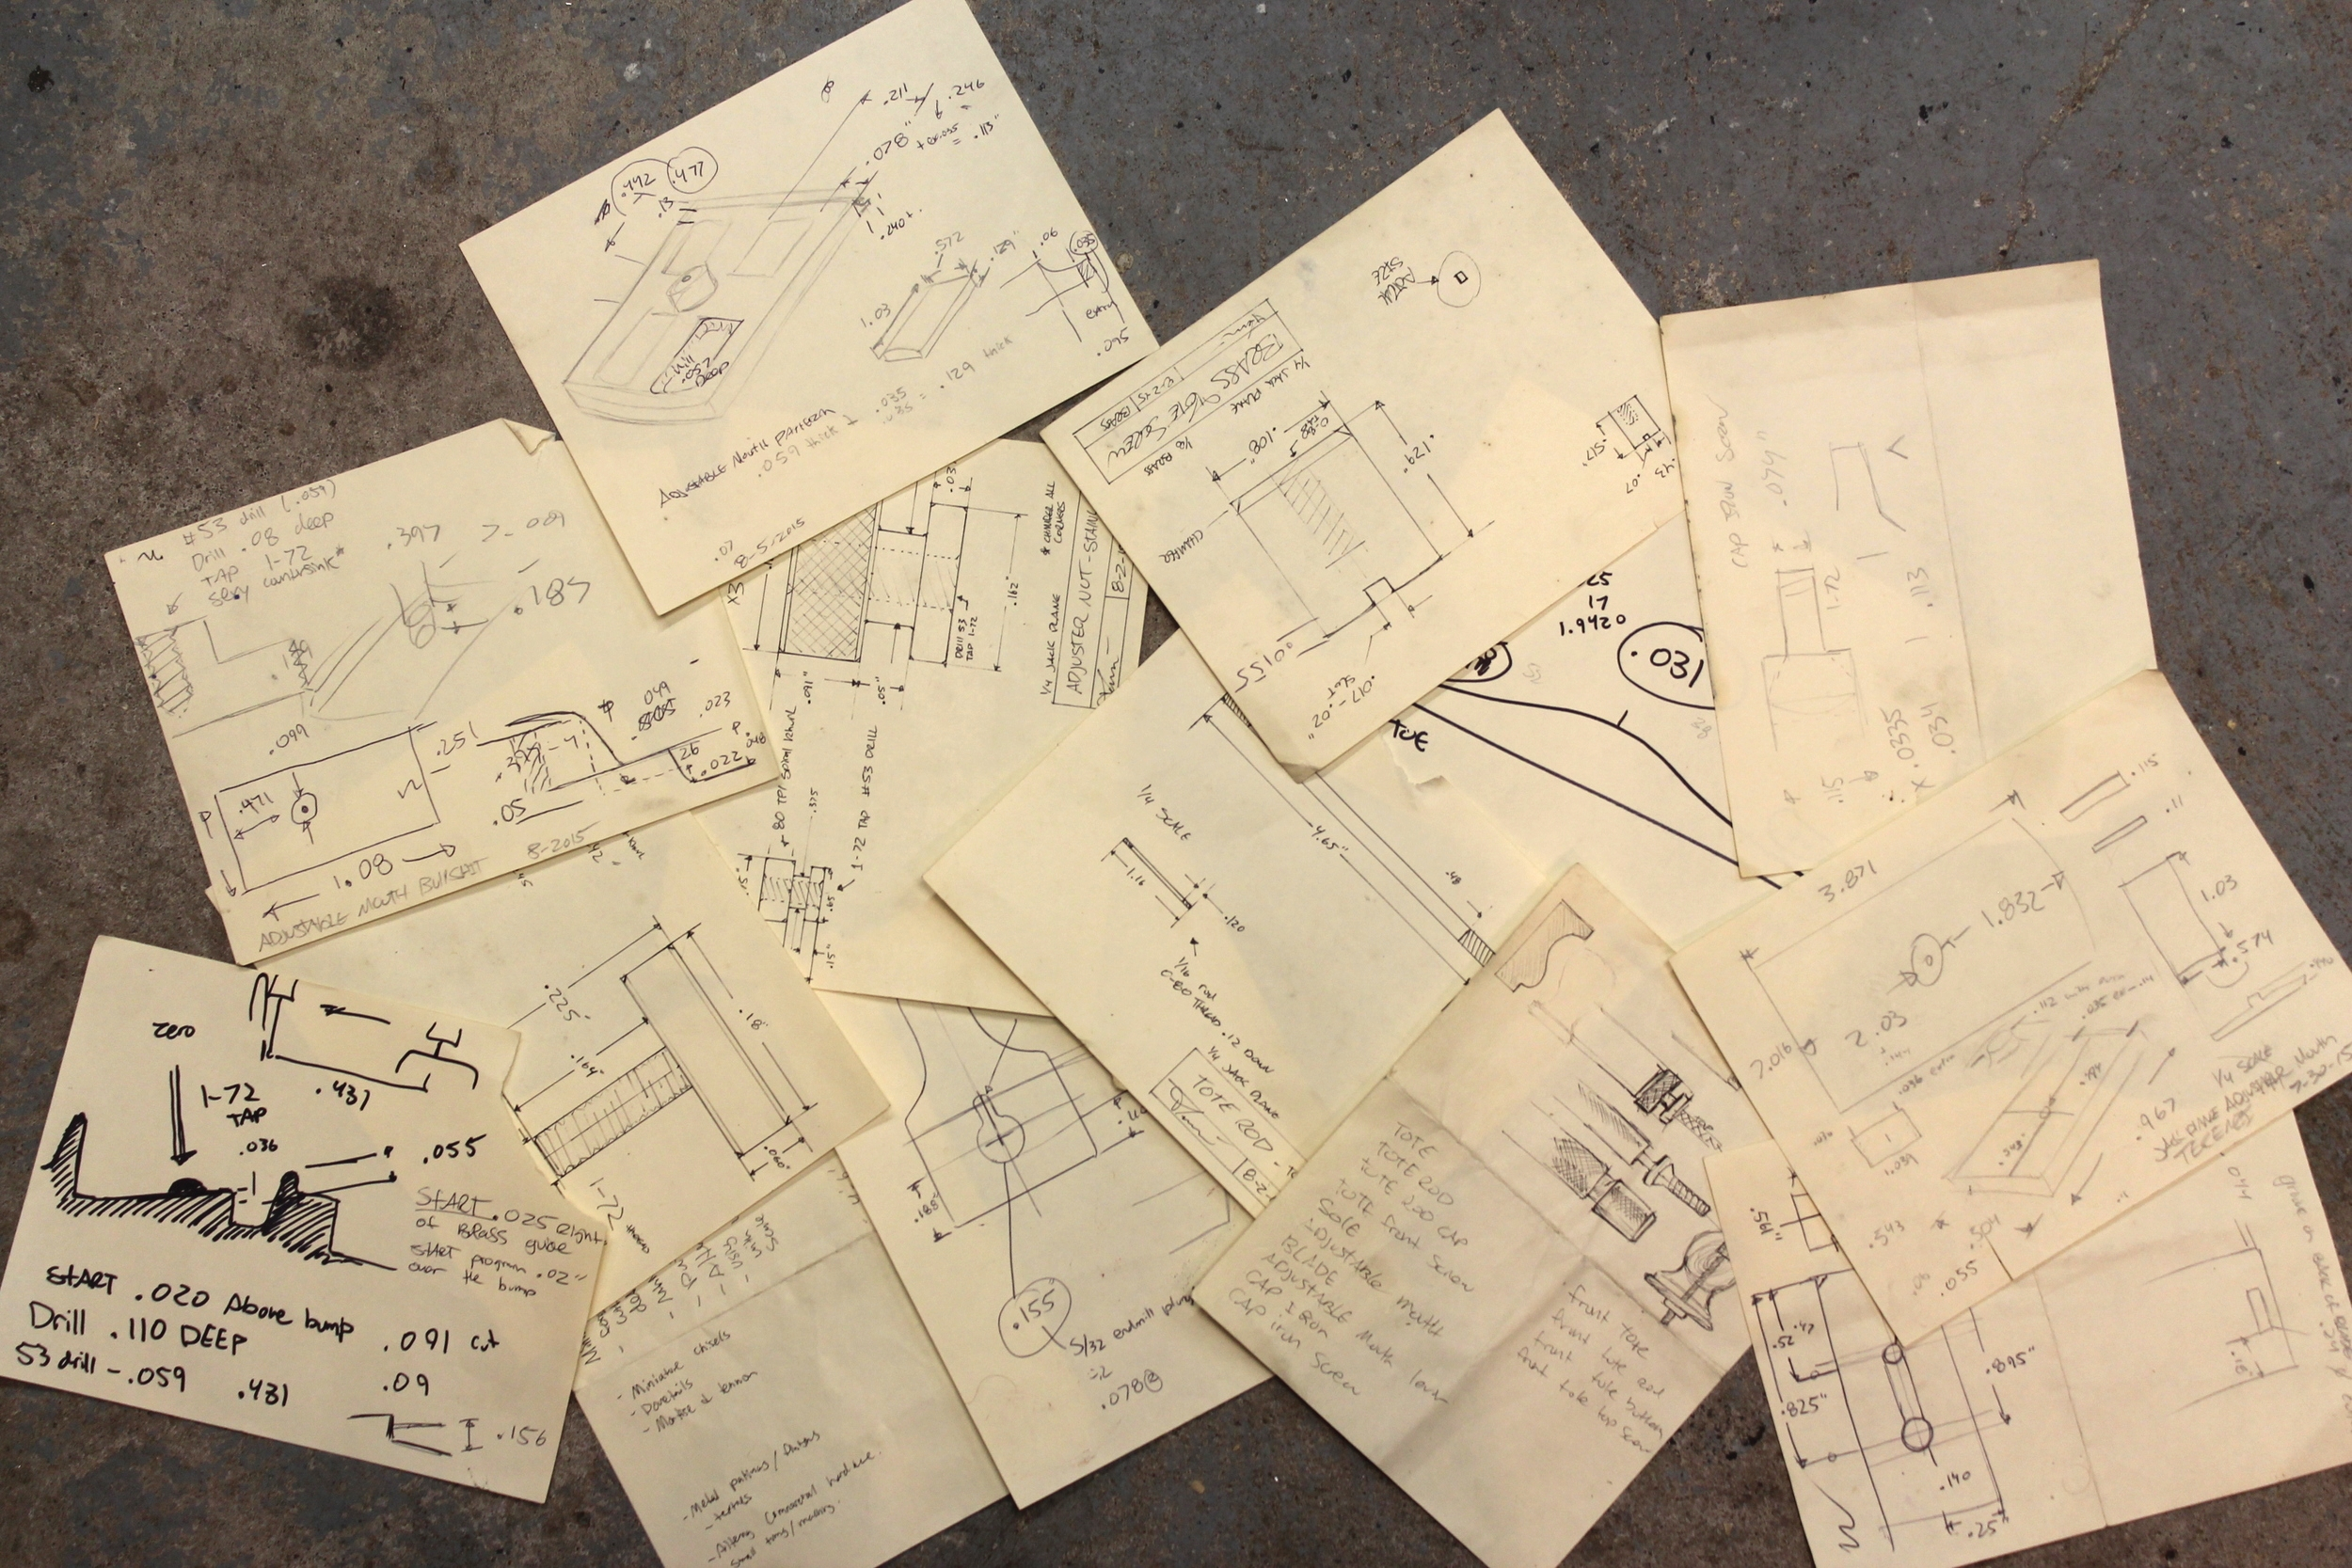 A portion of the drawings